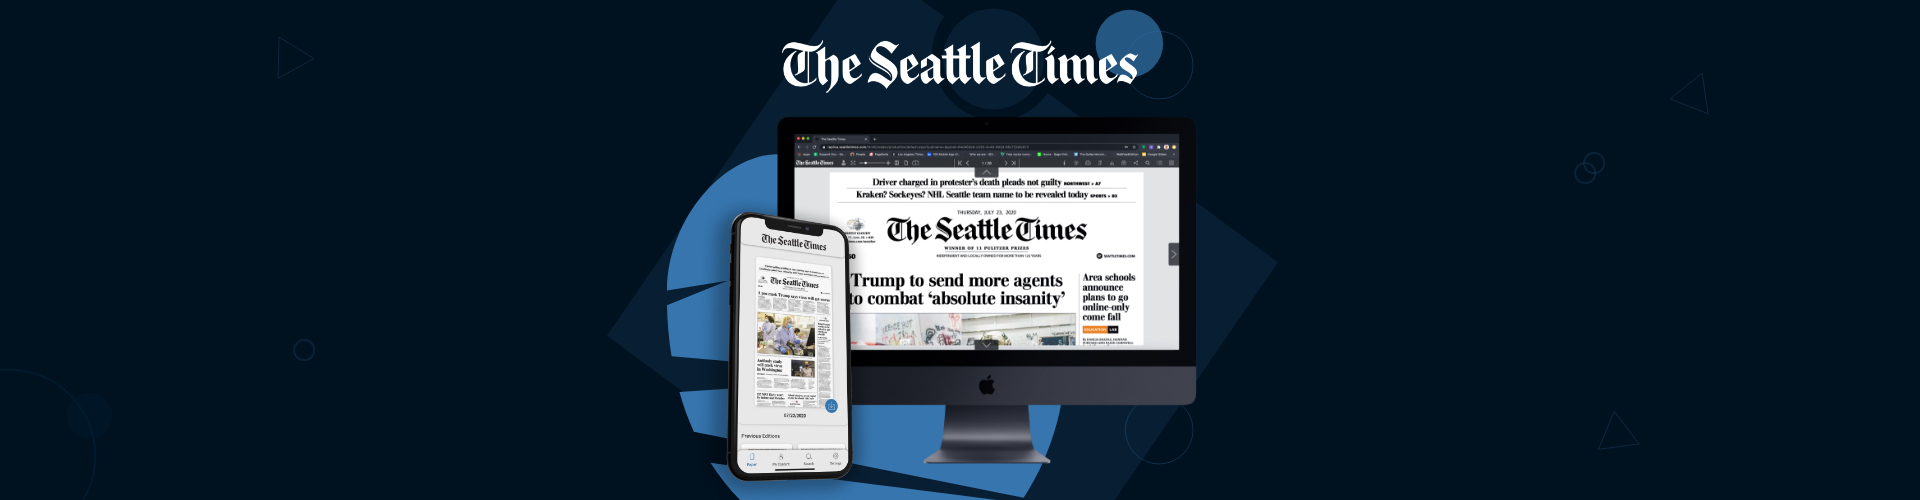 Image of The Seattle Times Launch on PageSuite's Edition Platform